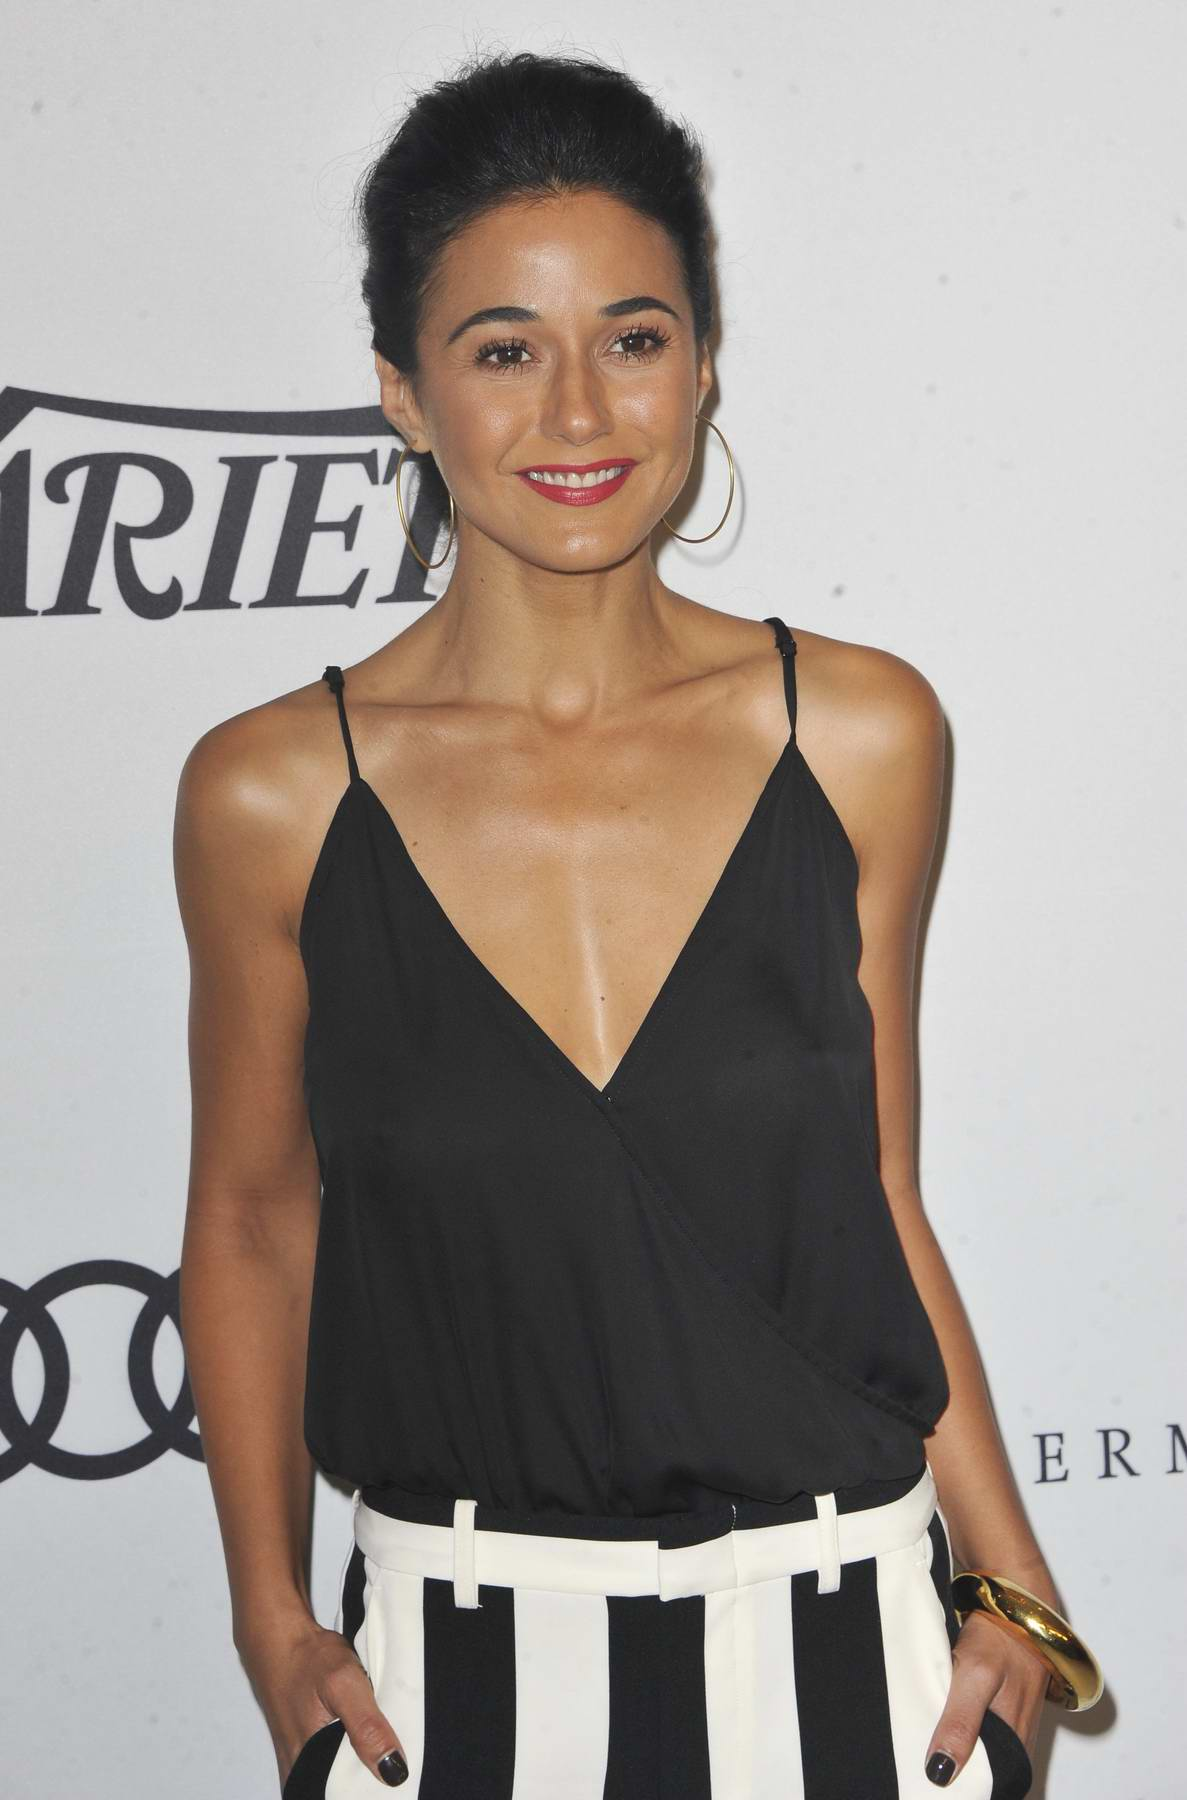 Emmanuelle Chriqui attends Variety's Power of Women presented by Lifetime in Los Angeles